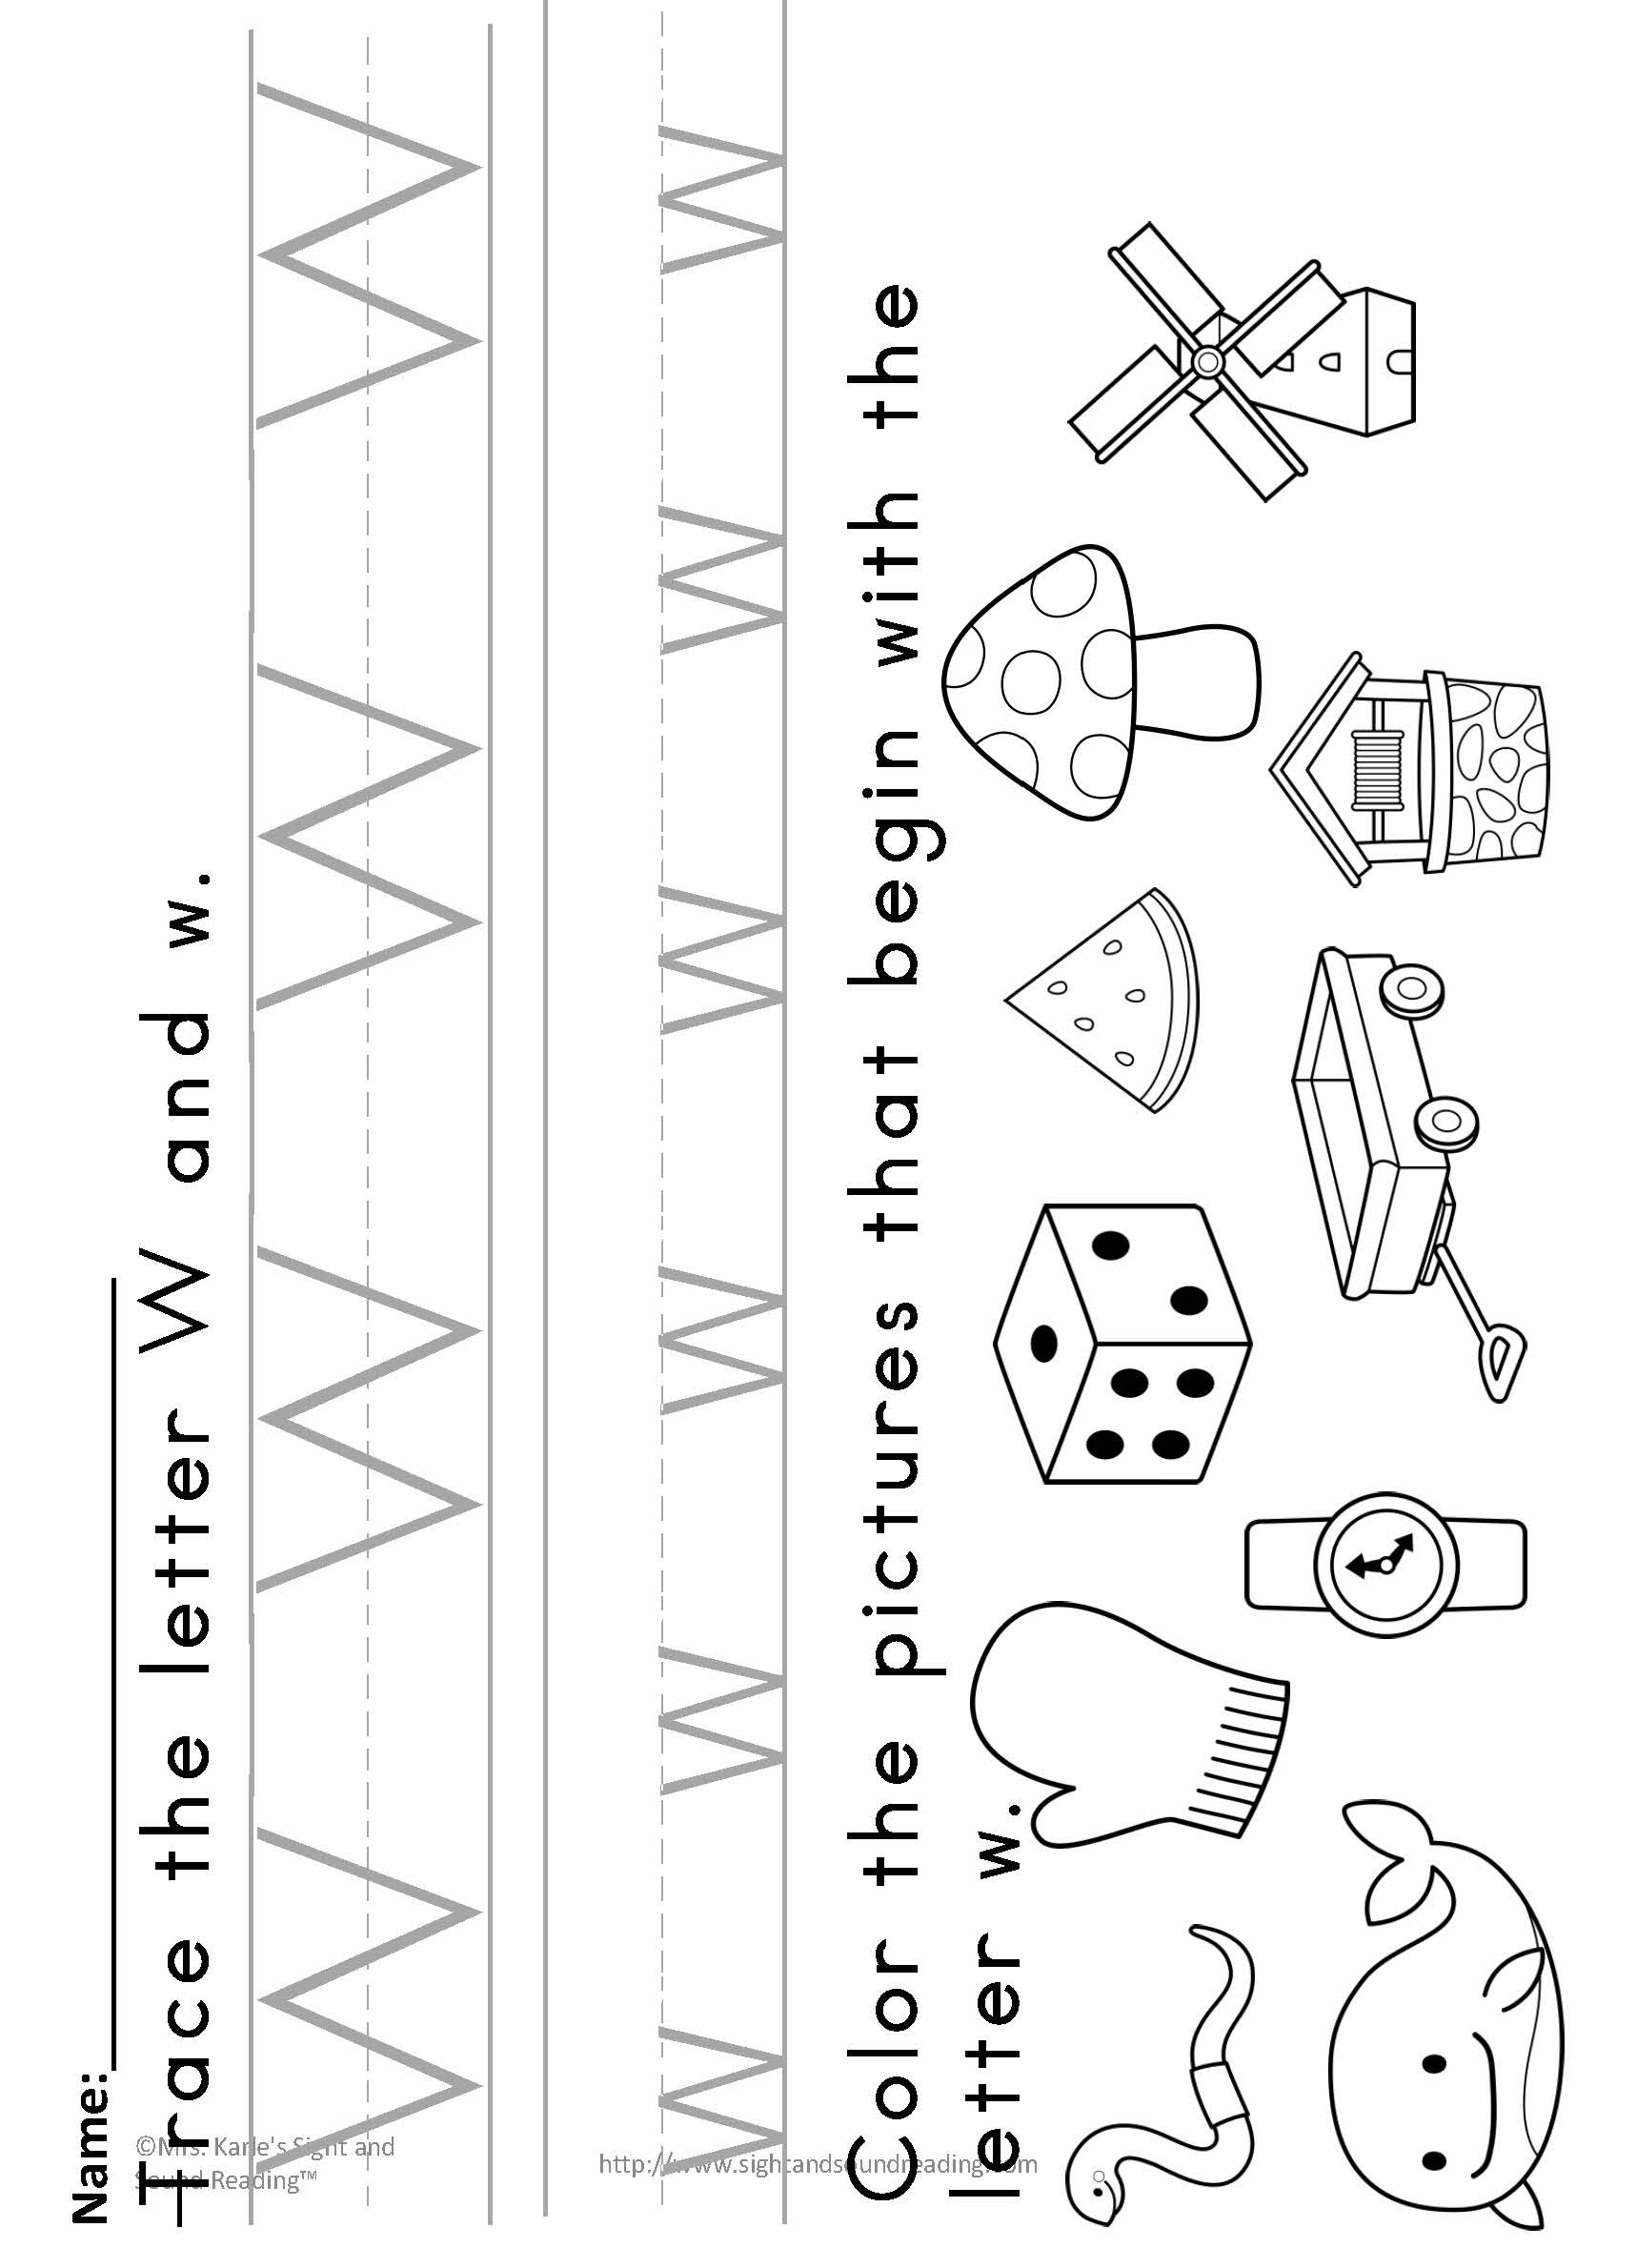 Beginning Sound Bundle Preview Page moreover Tracing Sheets For Kids E together with Maths Word Problems Subtraction Worksheet in addition Trace Ladybug further Alphabetprintables Letter L Blackwhite. on alphabet tracing worksheets kindergarten